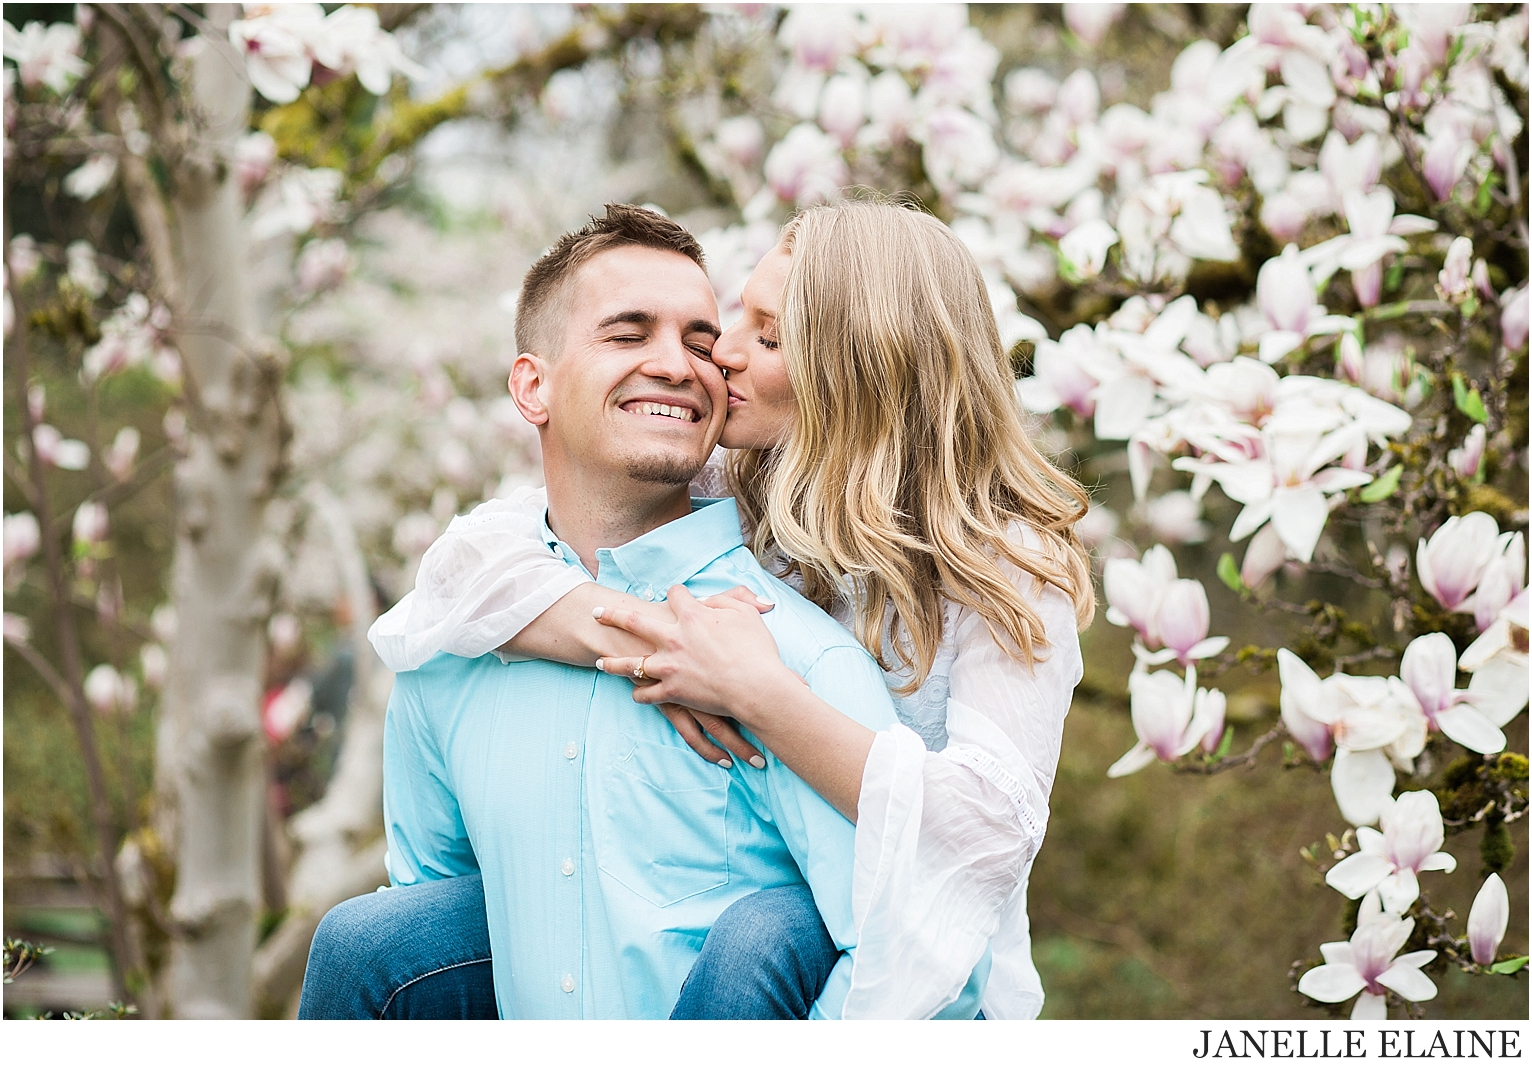 tricia and nate engagement photos-janelle elaine photography-170.jpg